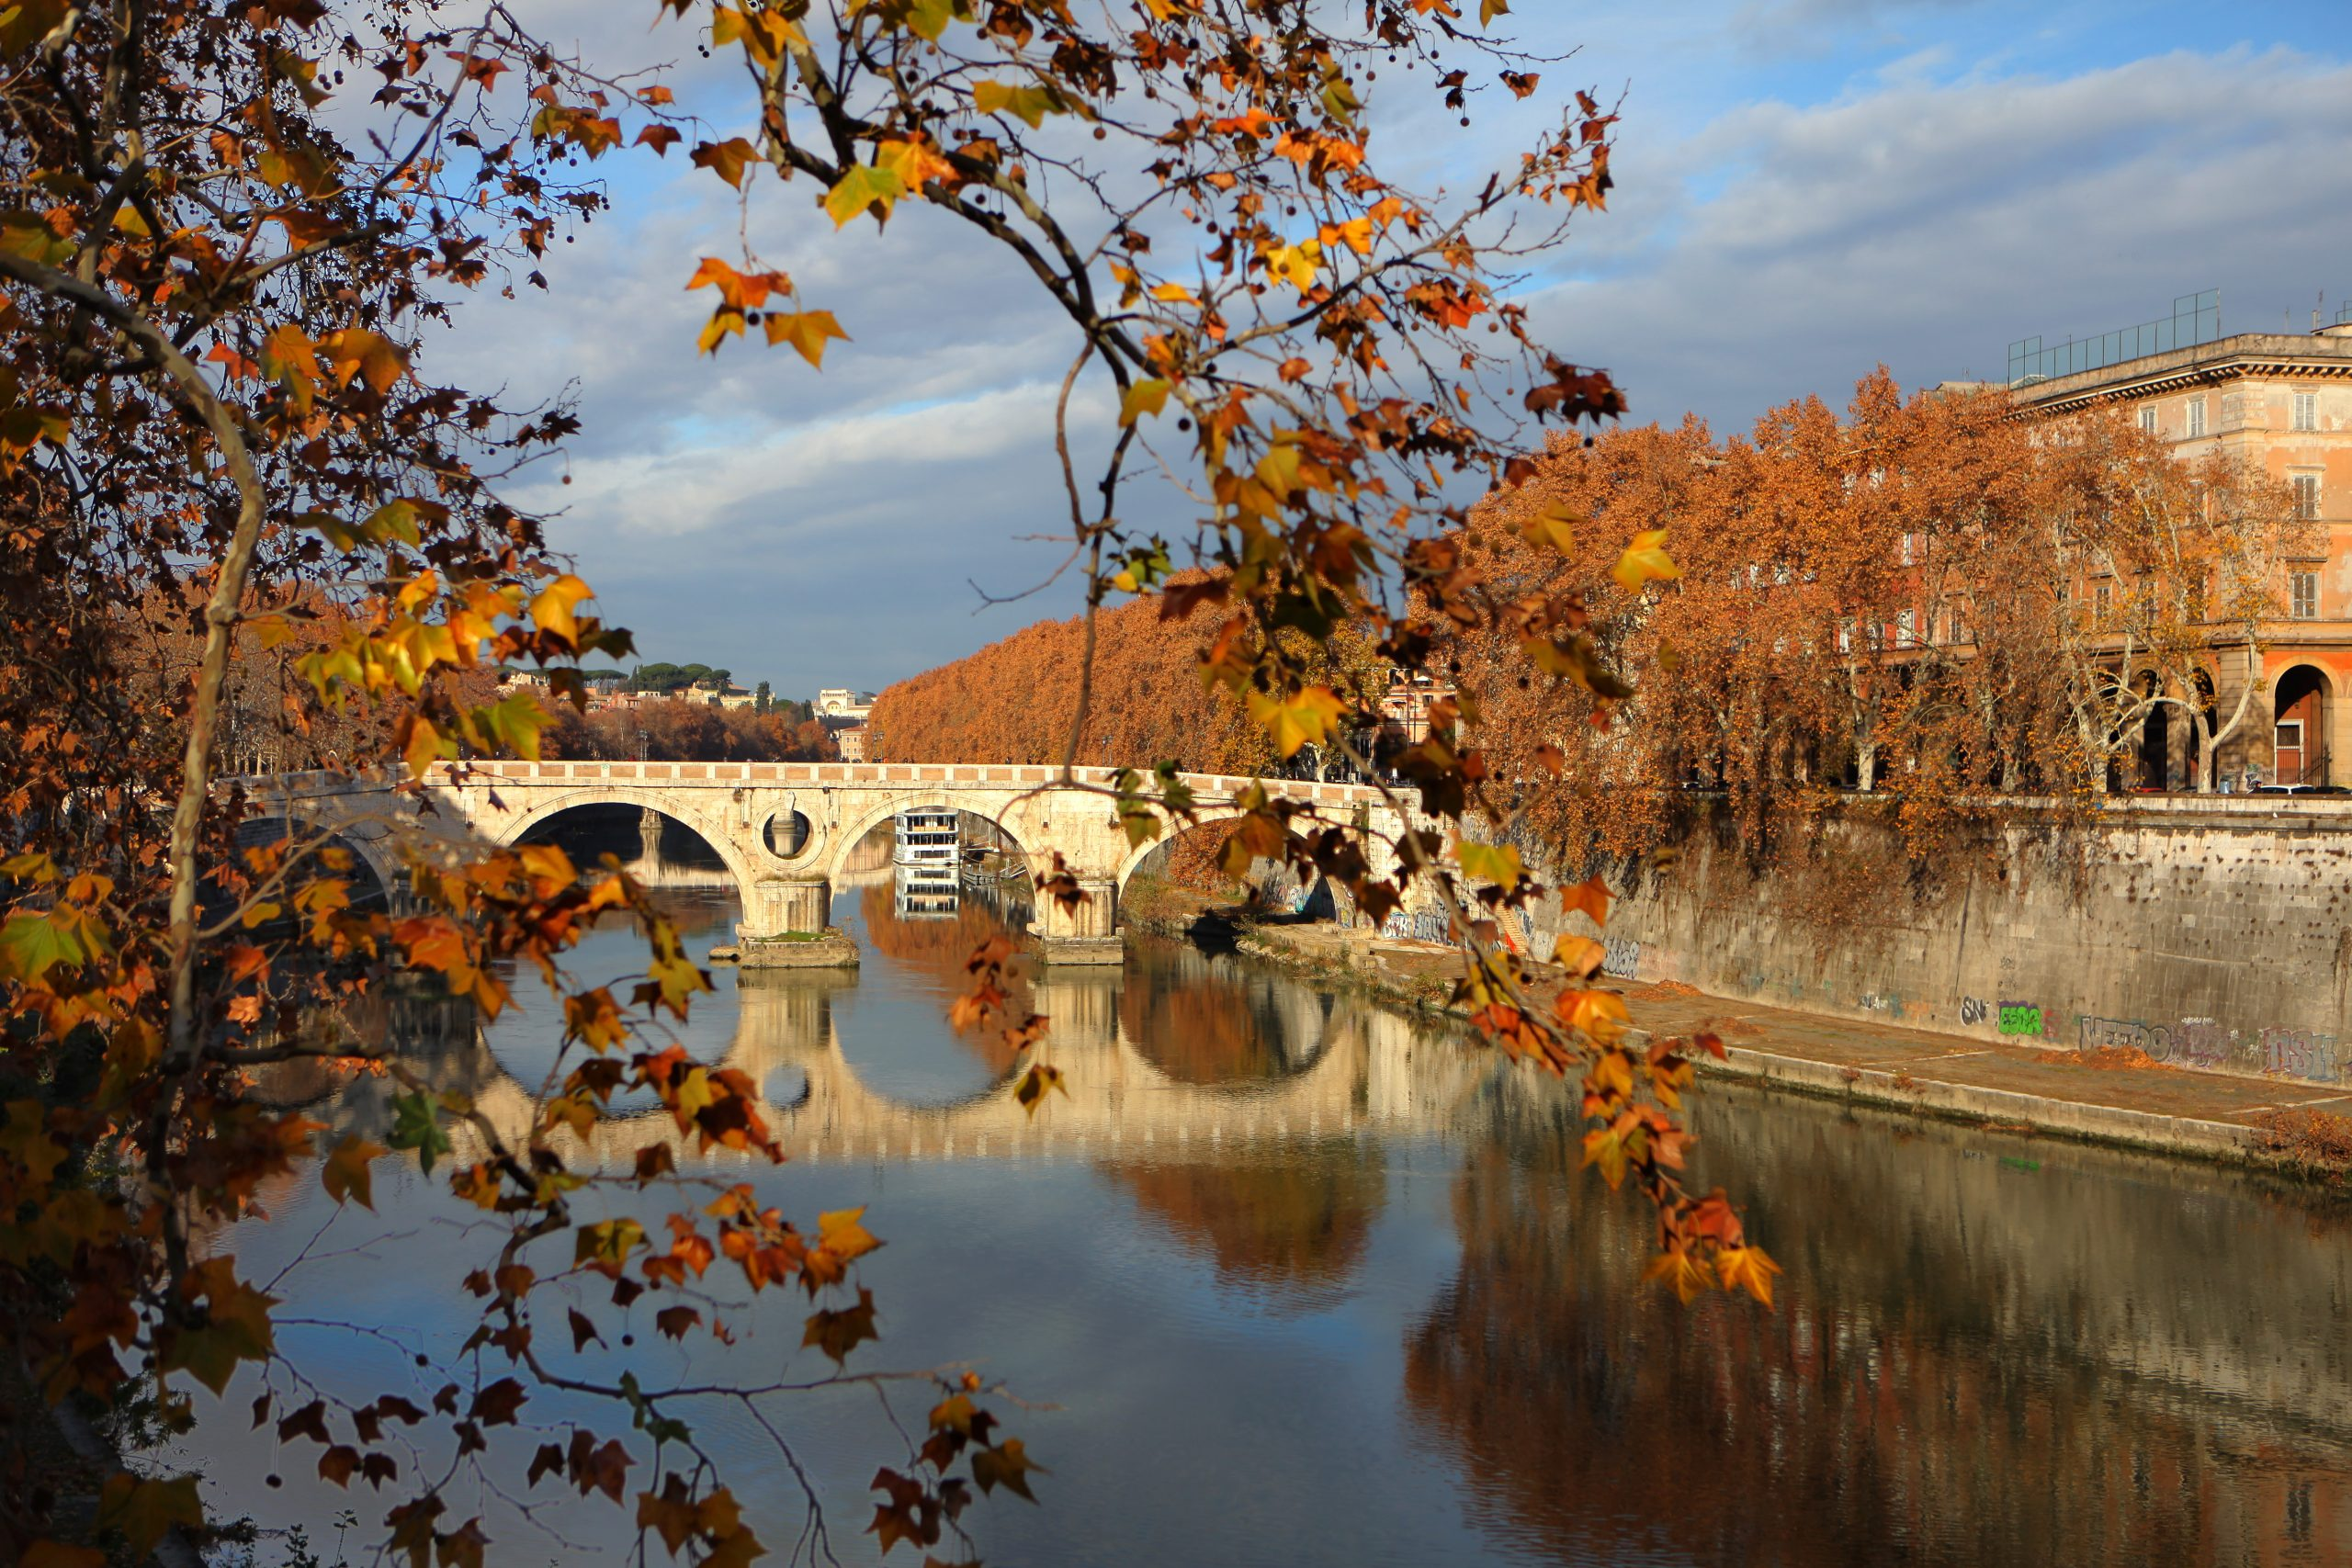 And 'officially the first day of autumn. Here are four things you should know about autumn